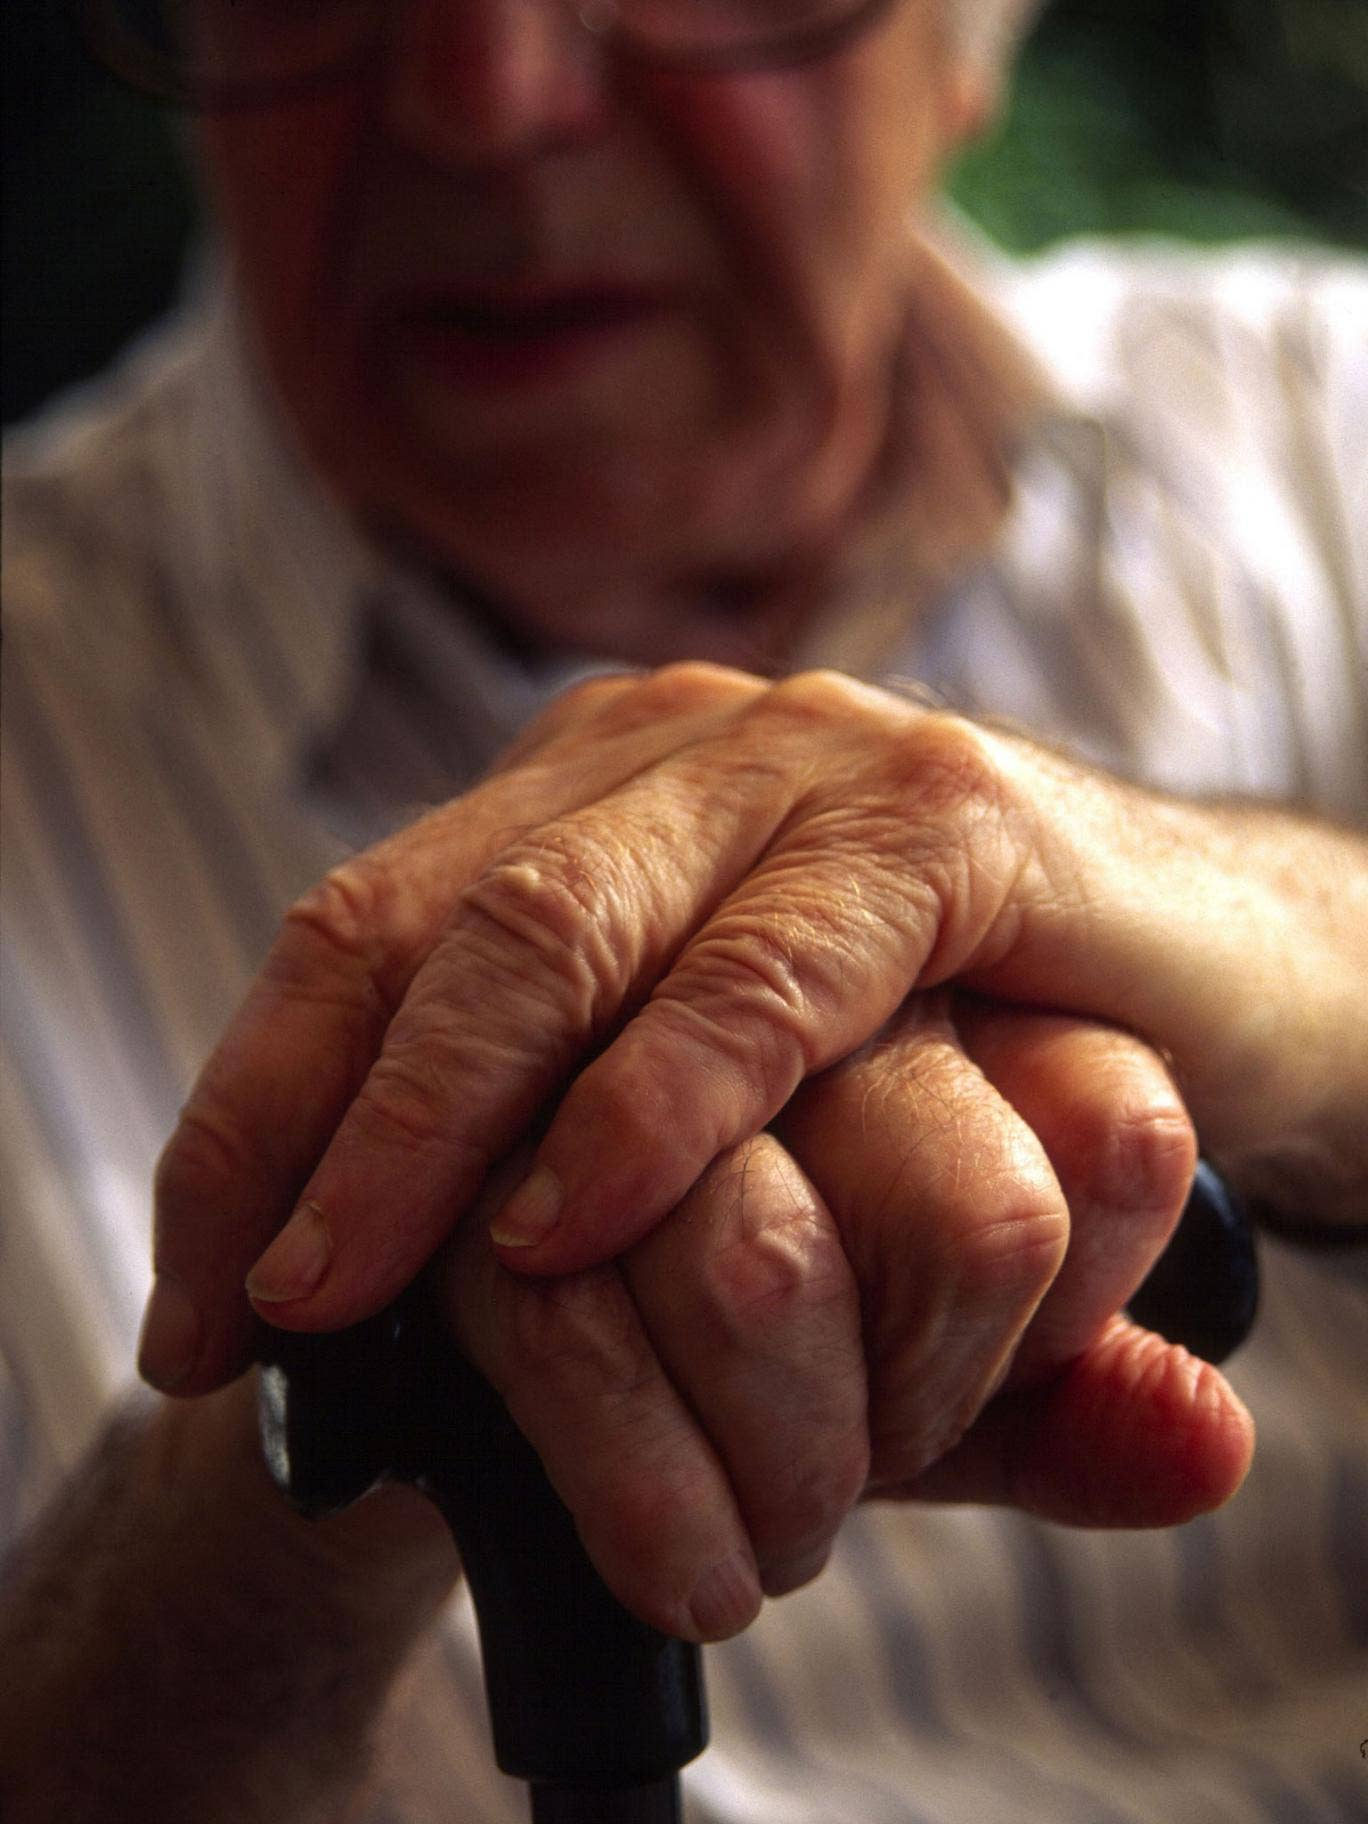 Some say hands can give away a person's age, but a new lifespan tests claims to find out how old you really are